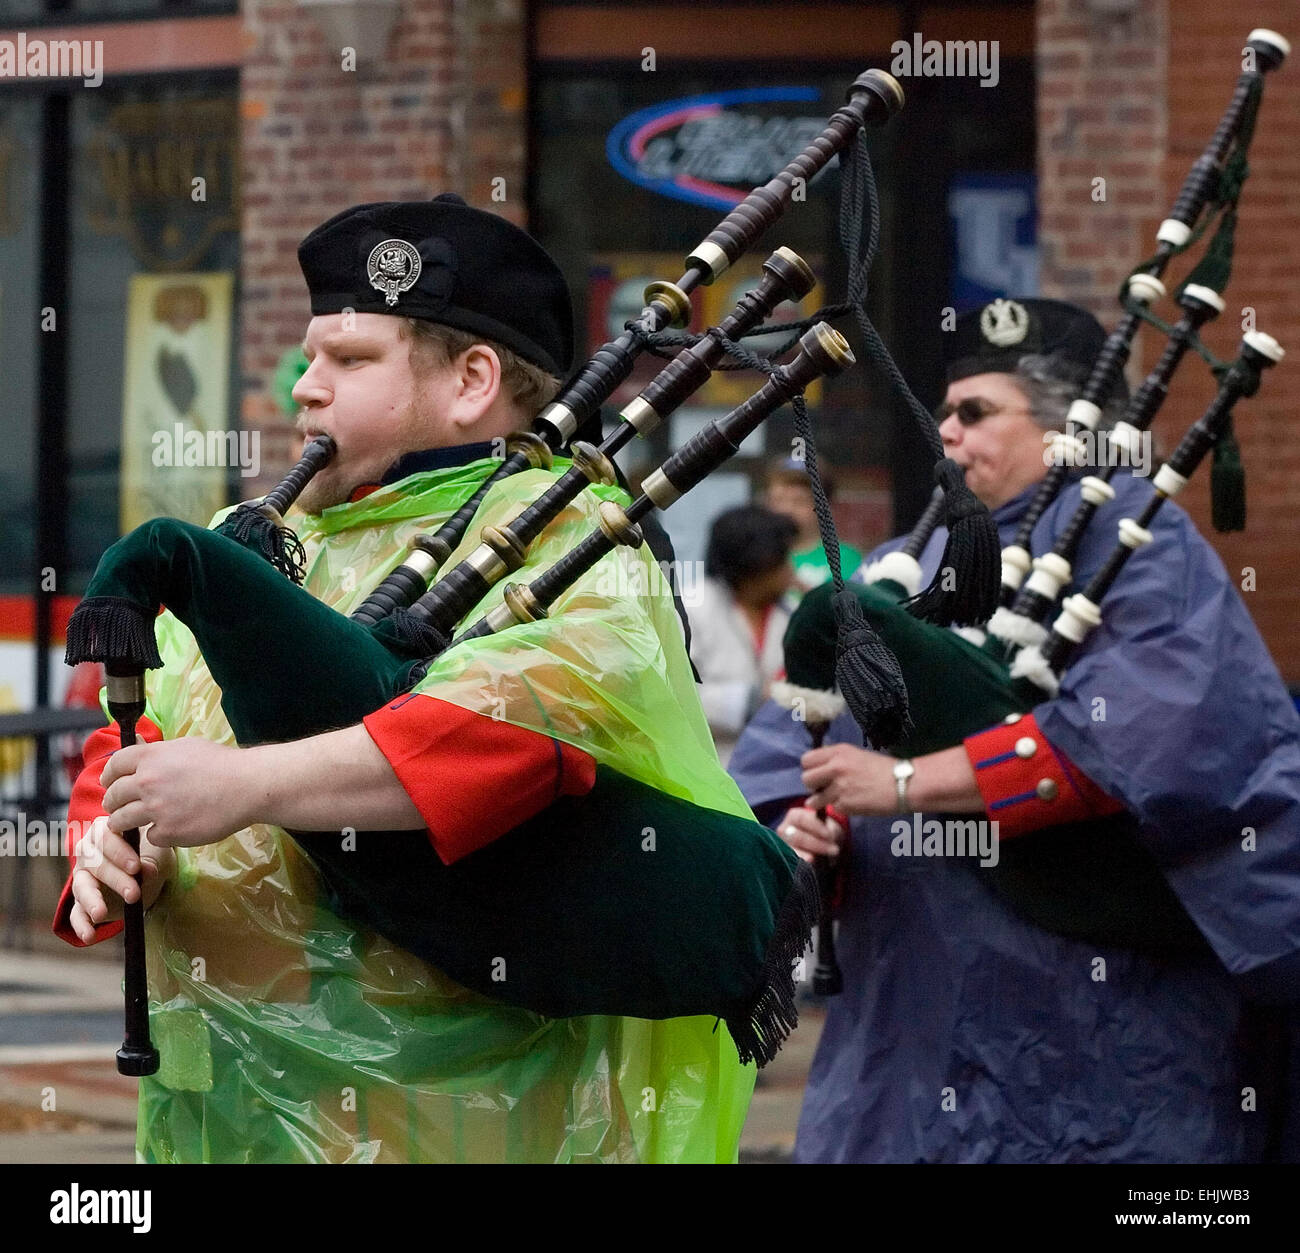 Two pipers in the William Sutherland Reid Pipes and Drums band clad in colorful rain ponchos over ancient Scottish - Stock Image